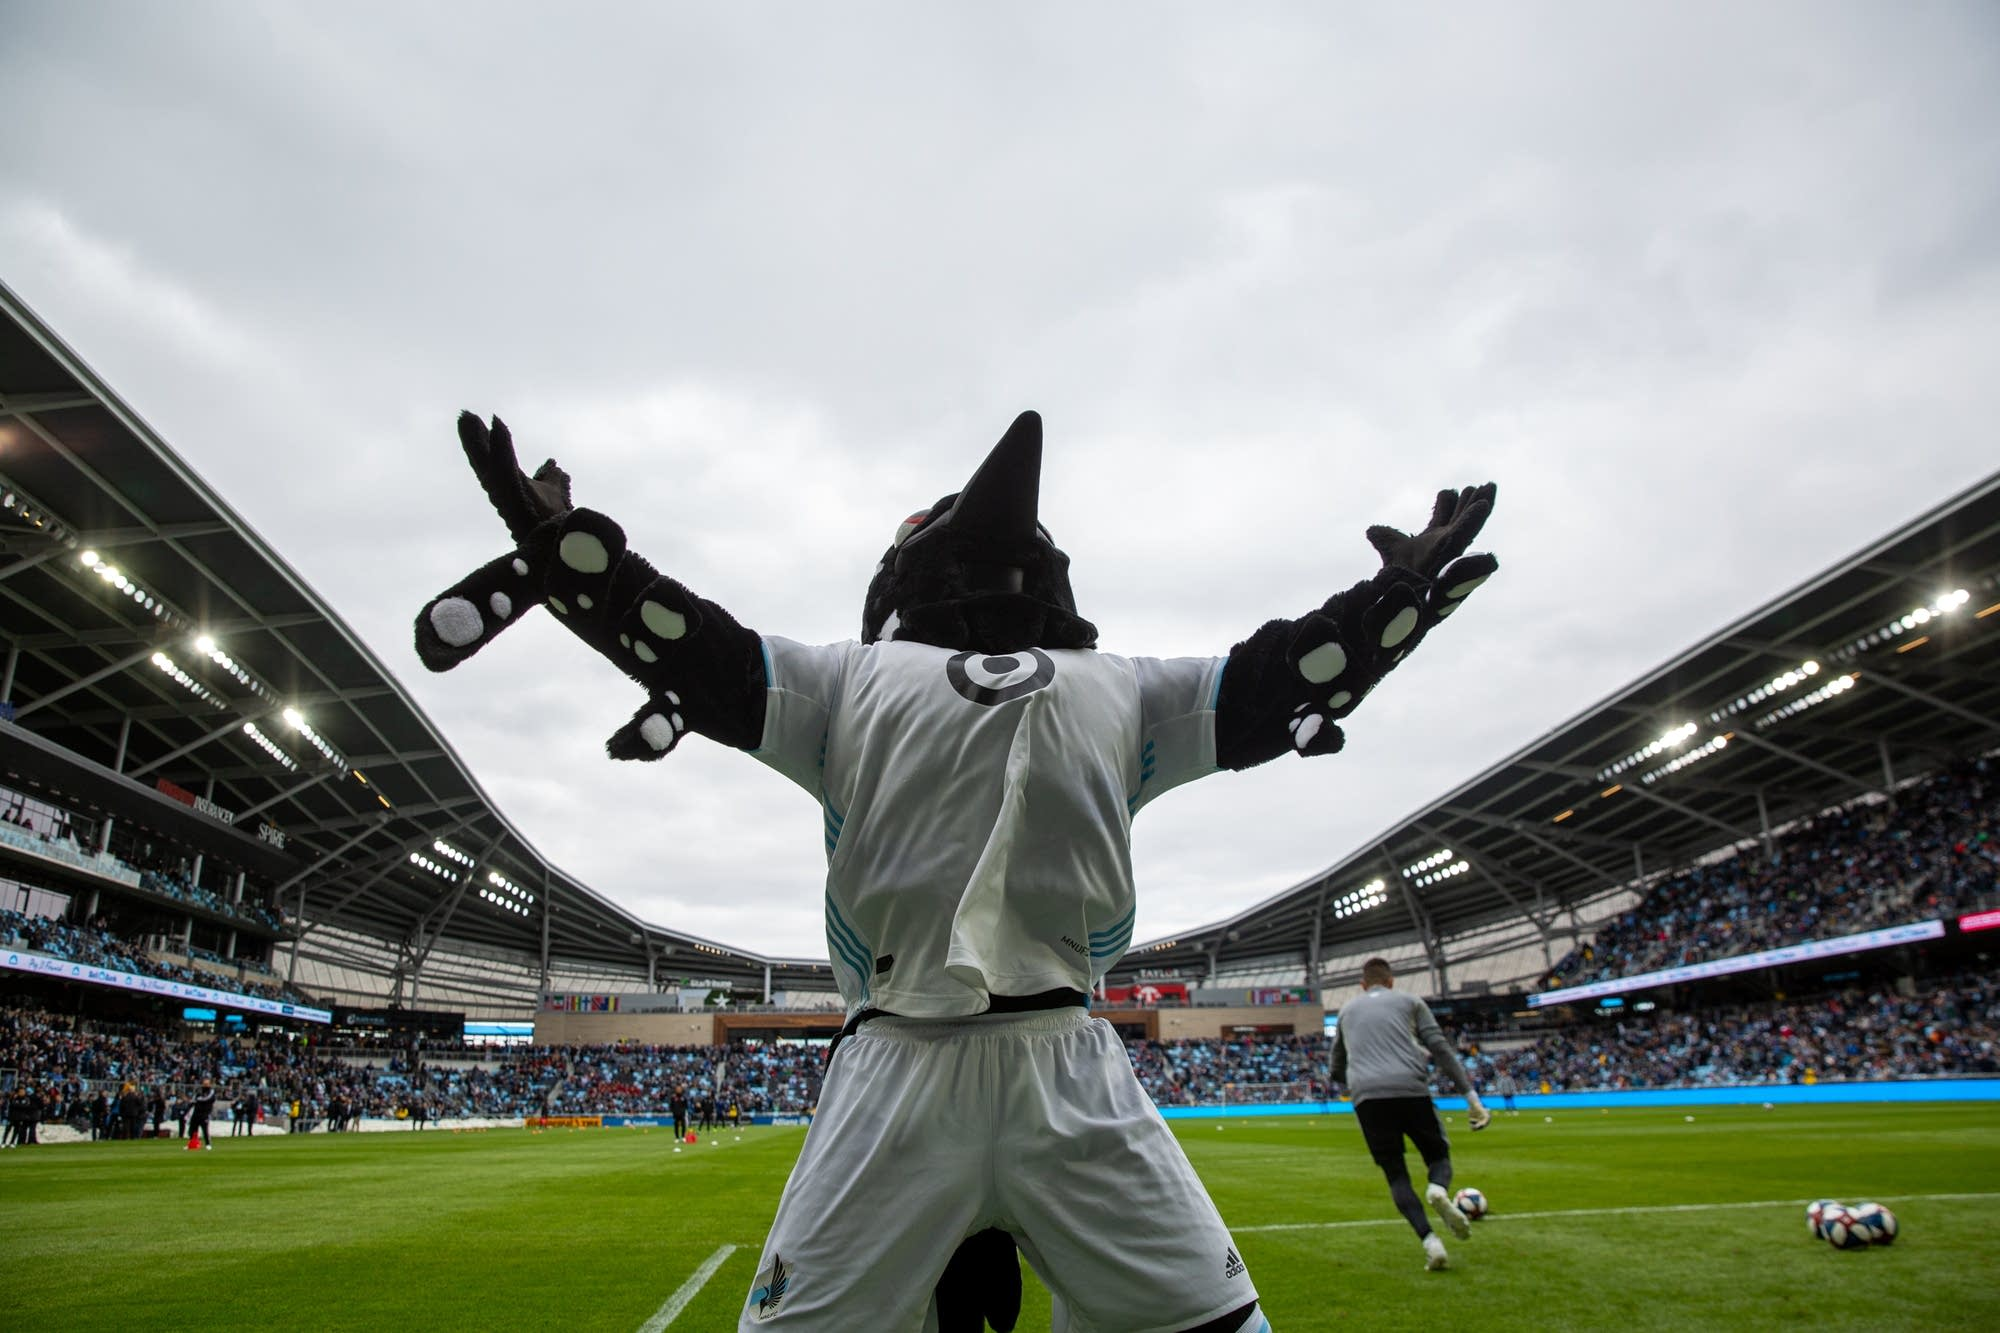 Minnesota United Mascot PK the Loon pumps up the crowd.